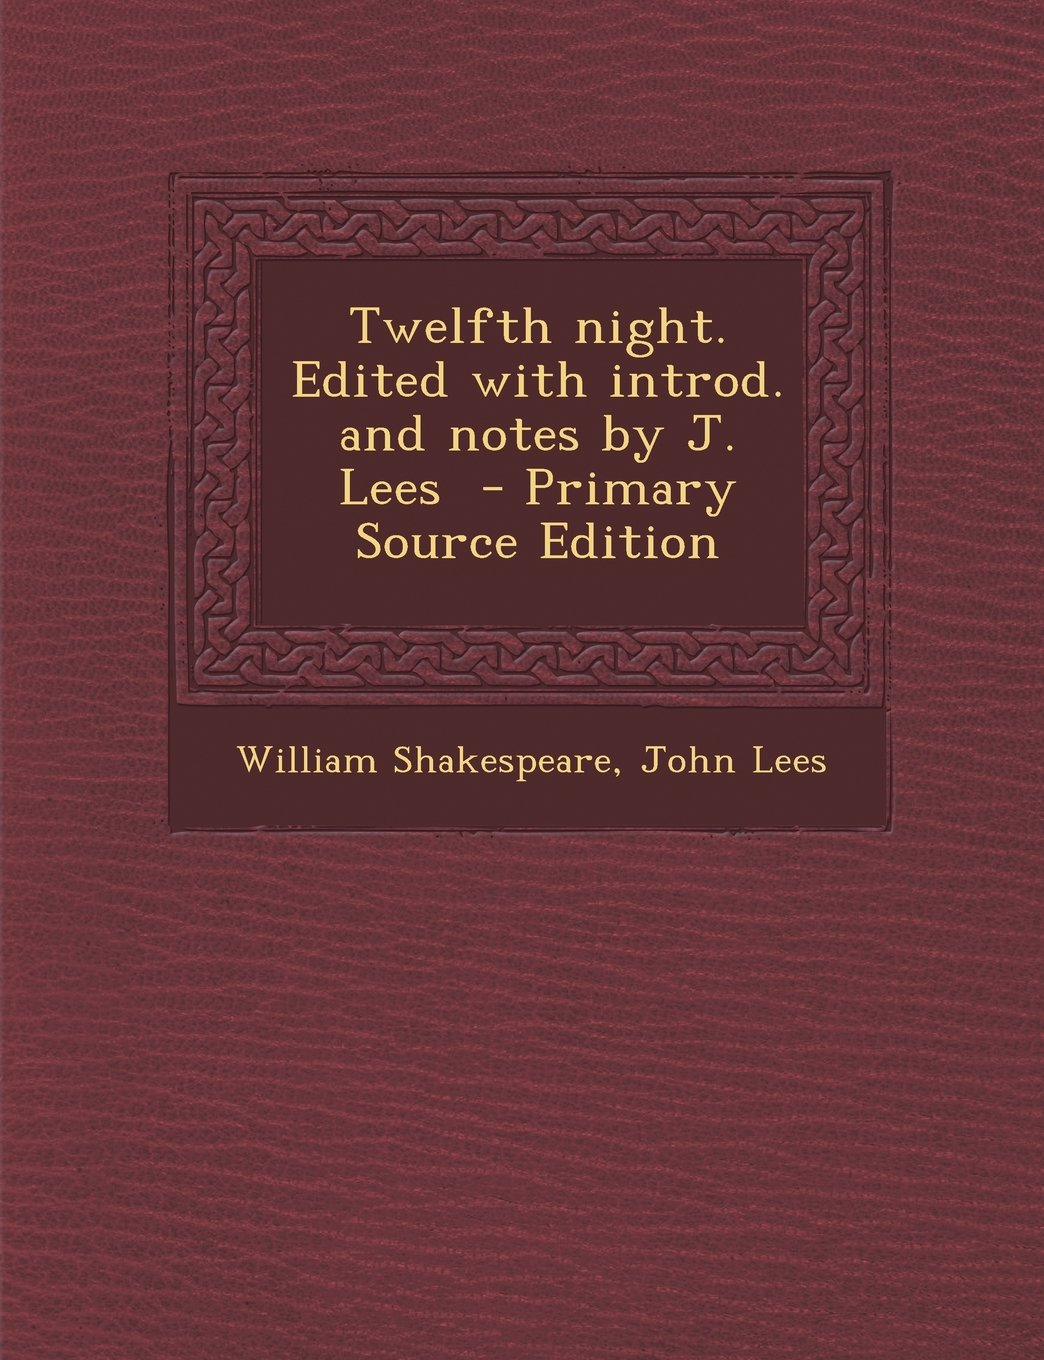 Read Online Twelfth night. Edited with introd. and notes by J. Lees pdf epub